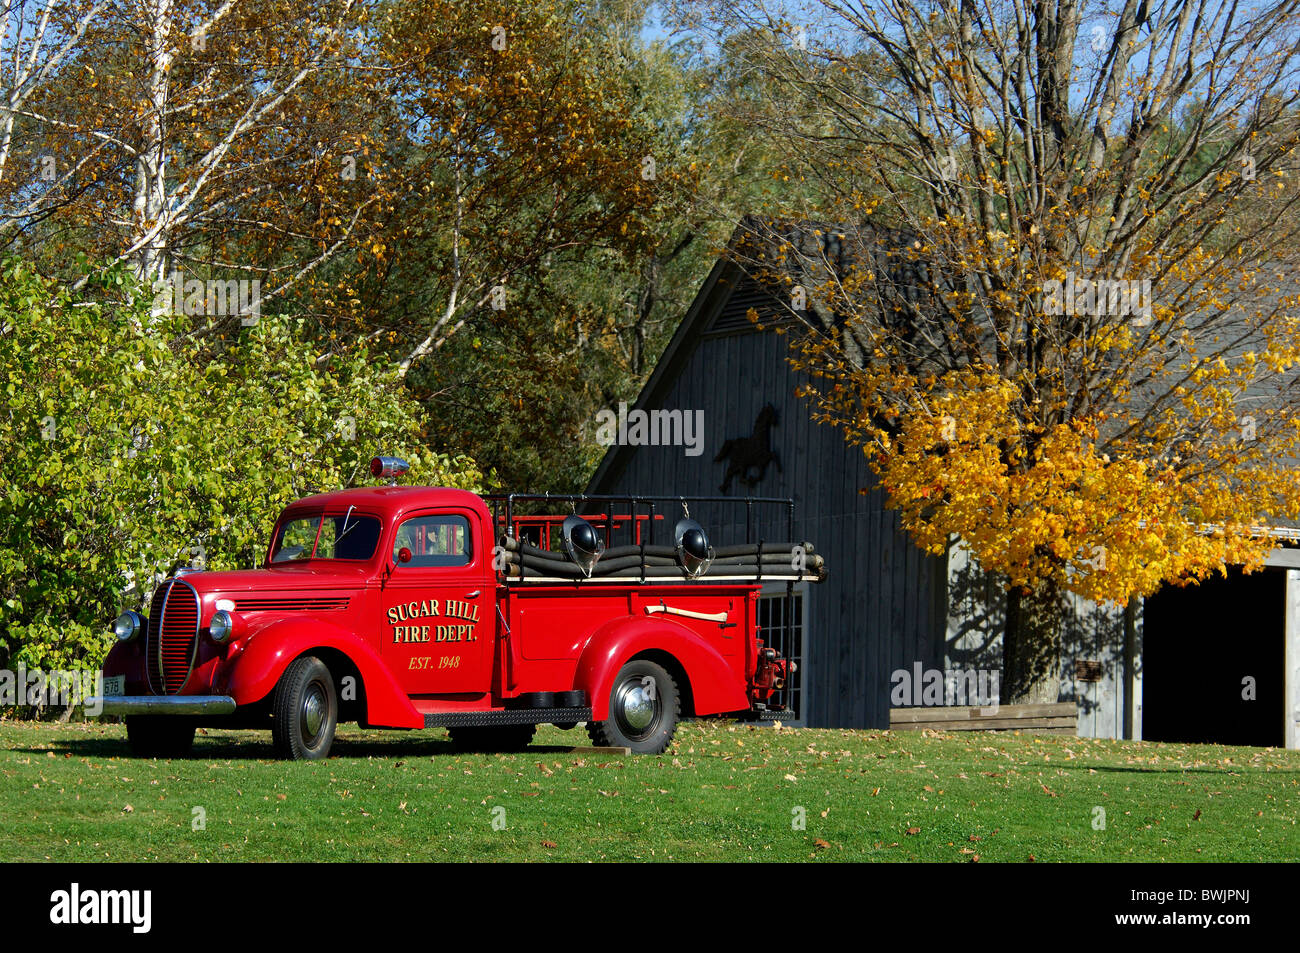 Fire Engine Fire Brigade Department Red Vehicle Vessel Fire Engine  Old Timer Autumn Sugar Hill